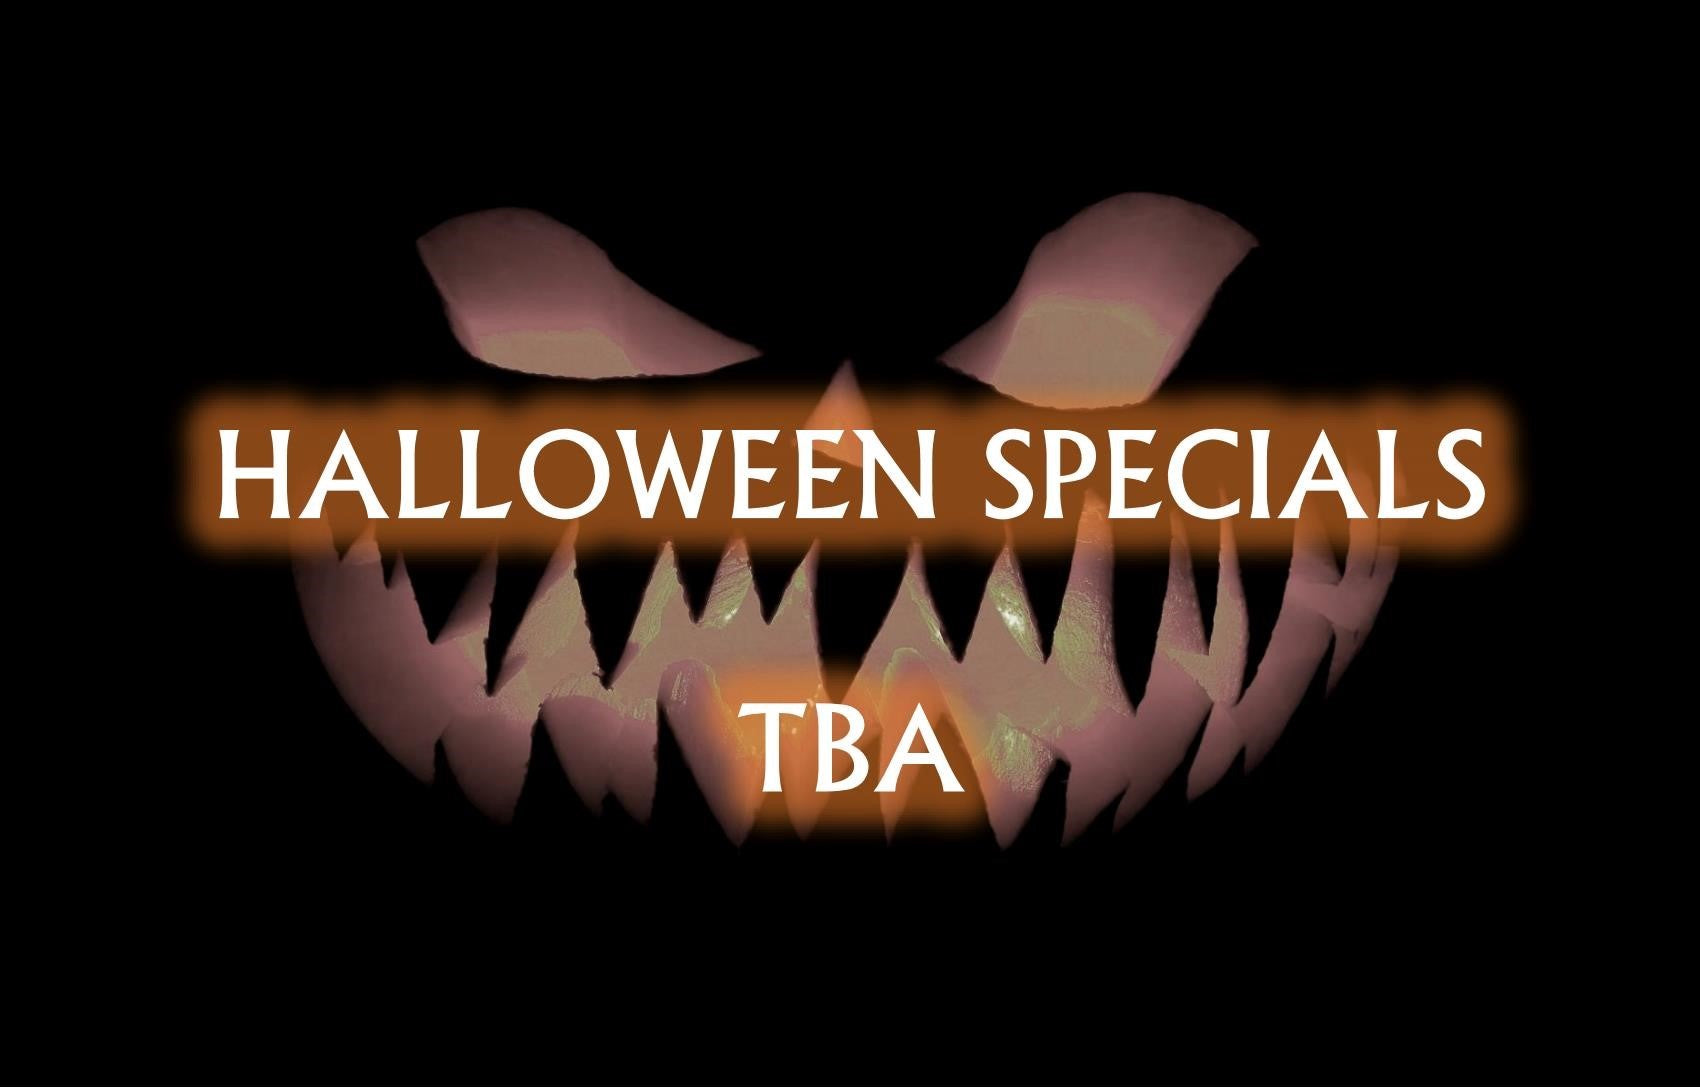 Halloween Specials To Be Announced